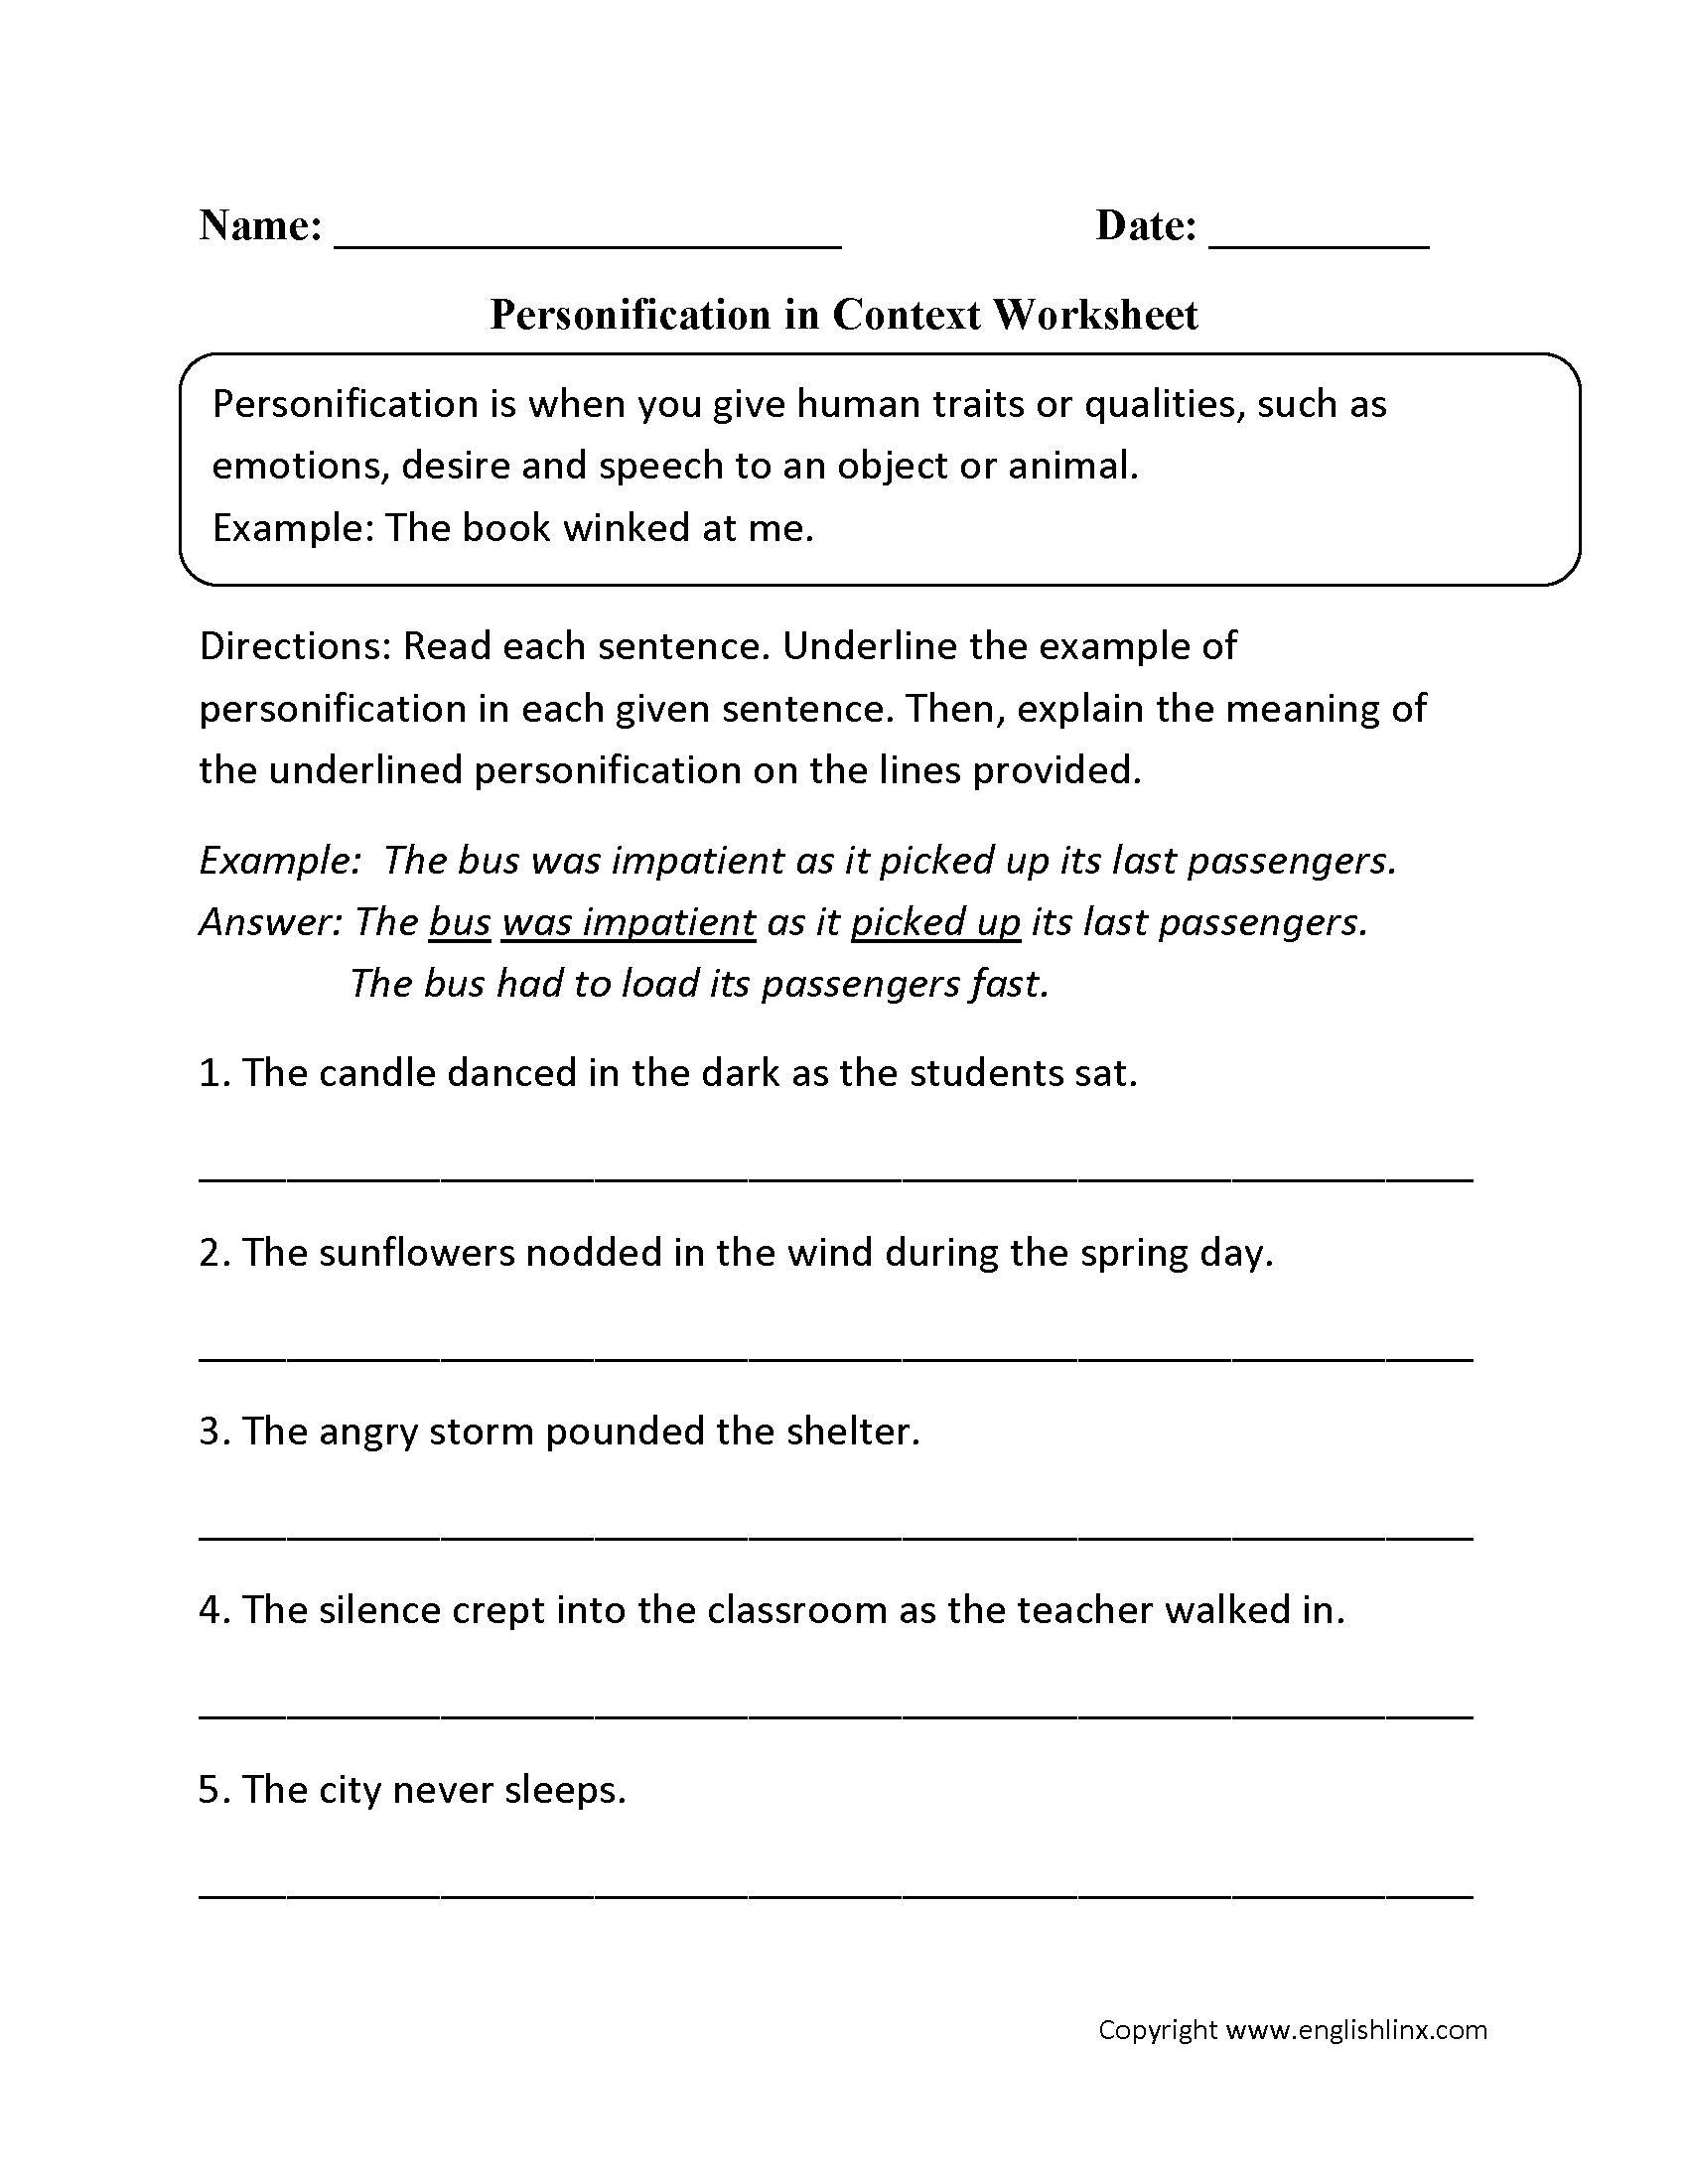 Worksheets Hyperbole Worksheets personification figurative language worksheets schoolteaching worksheets